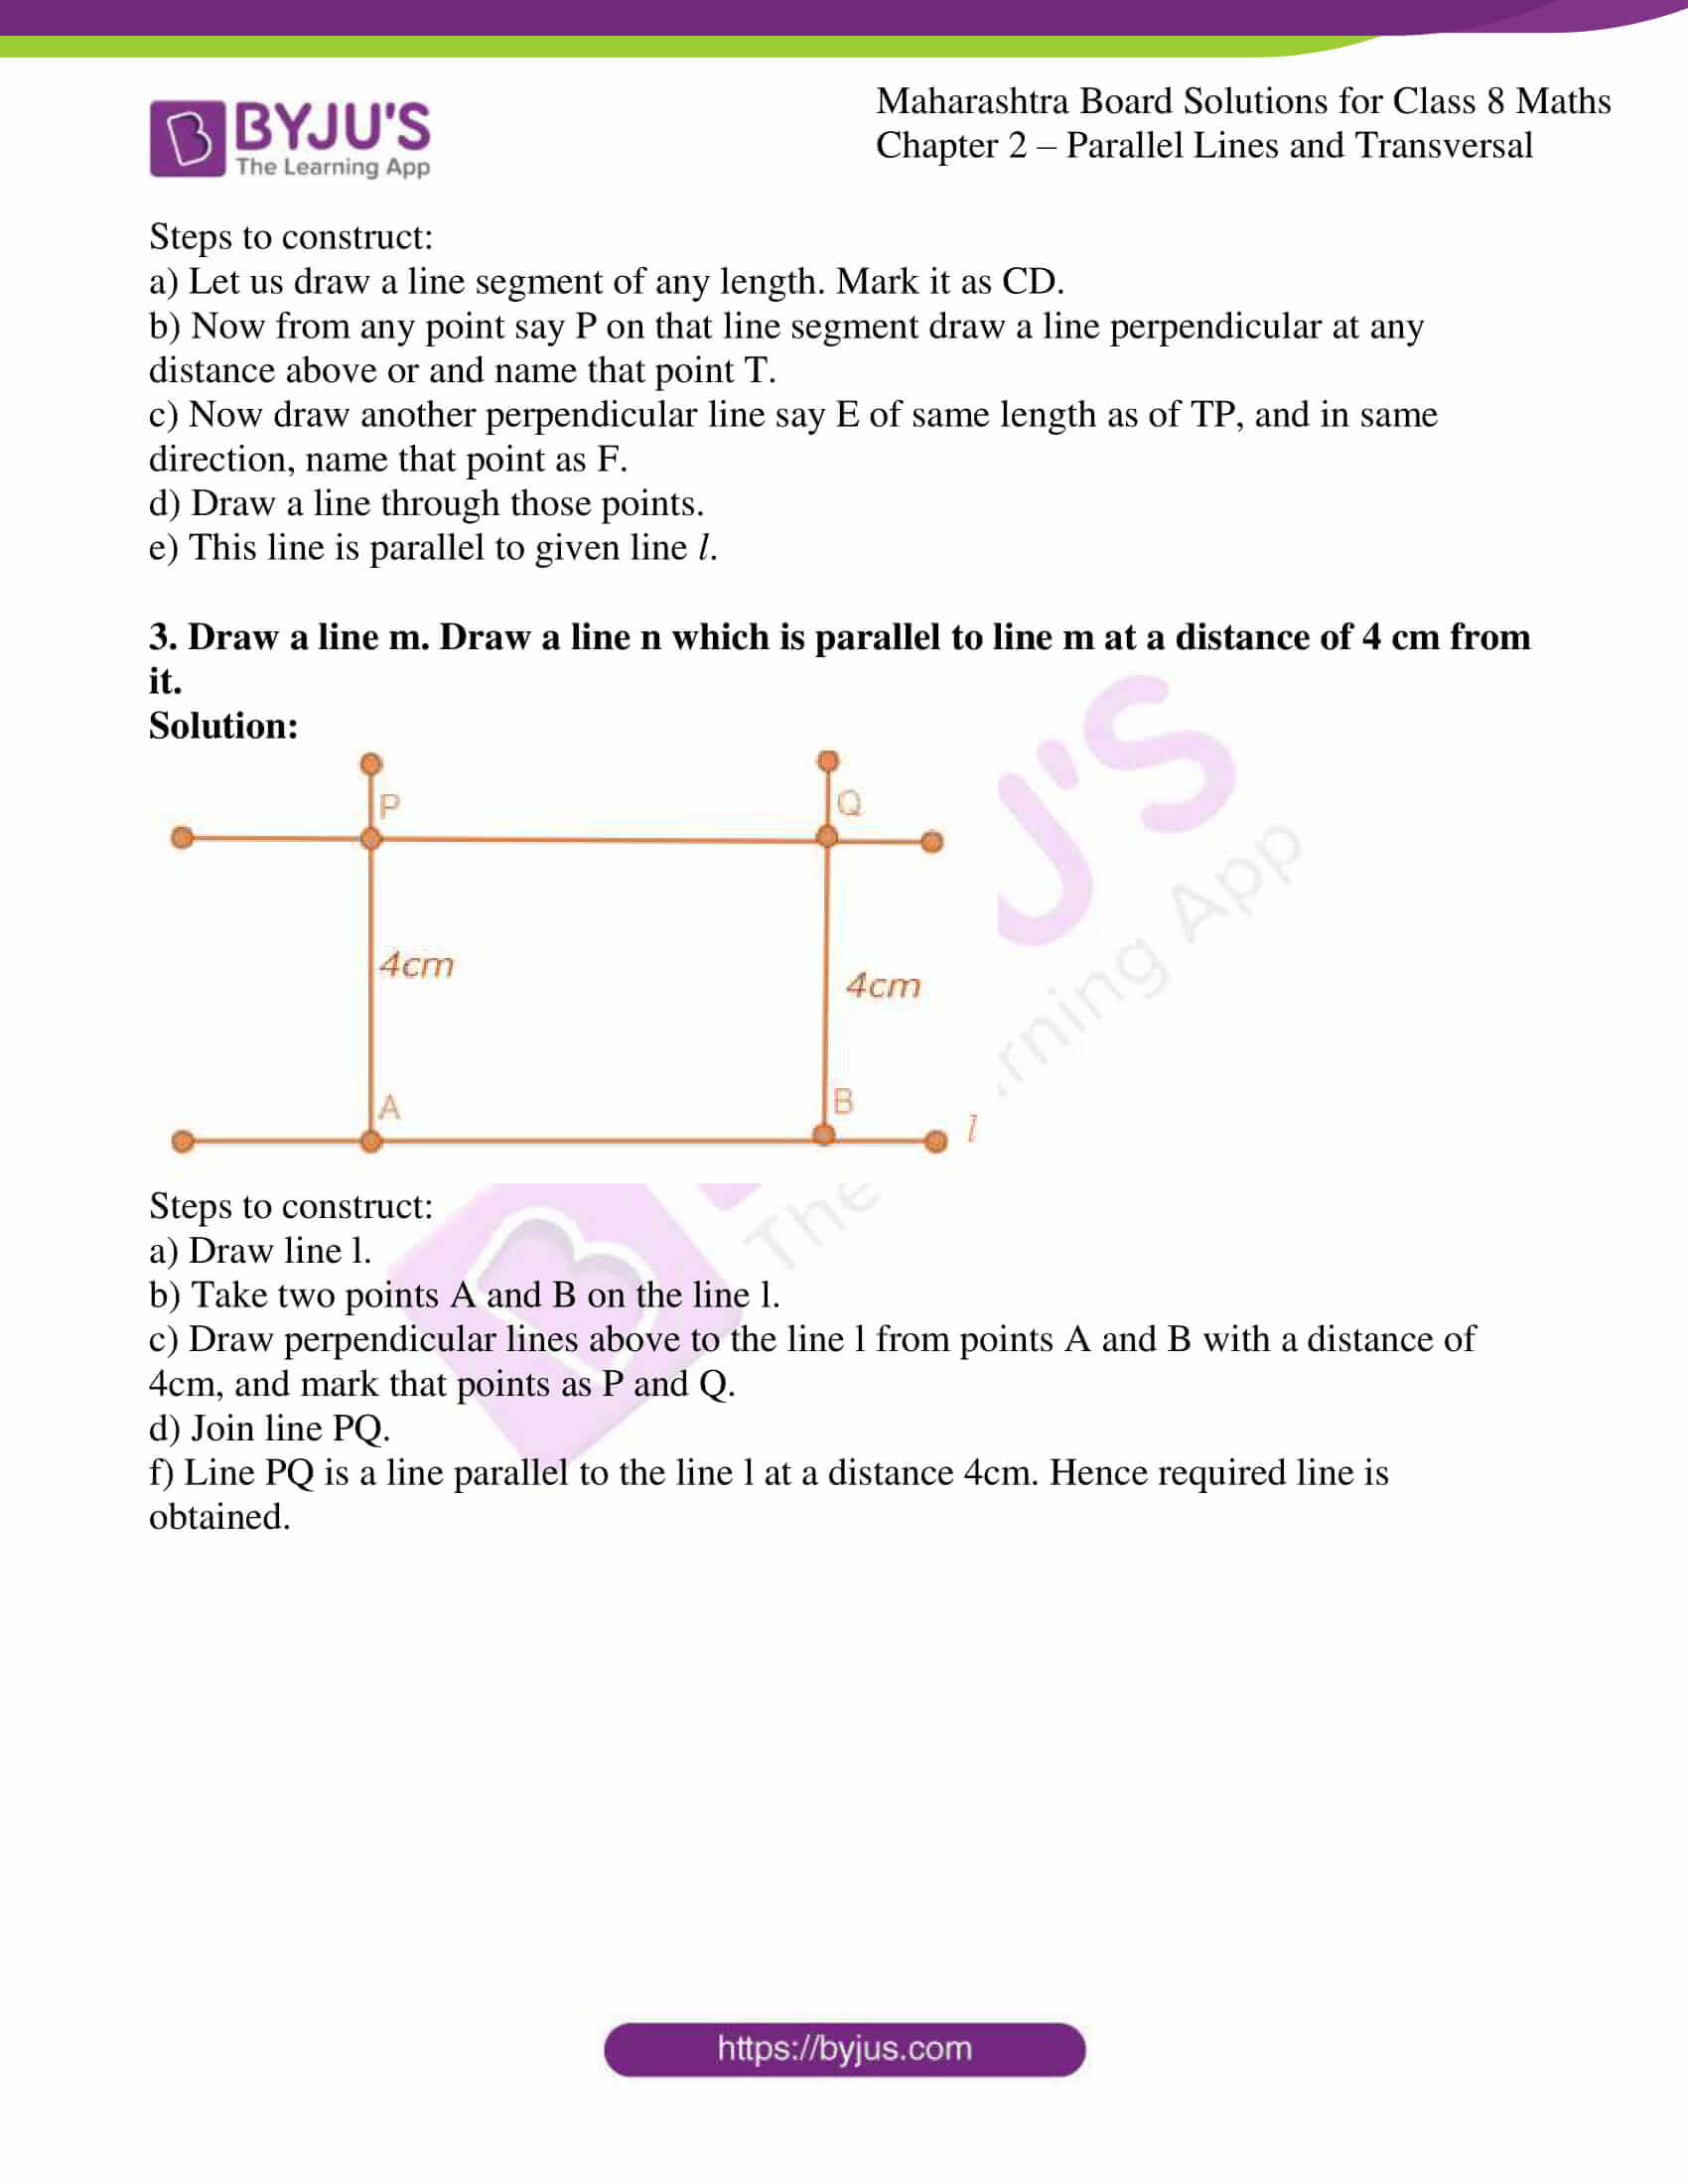 msbshse sol for class 8 maths chapter 2 10